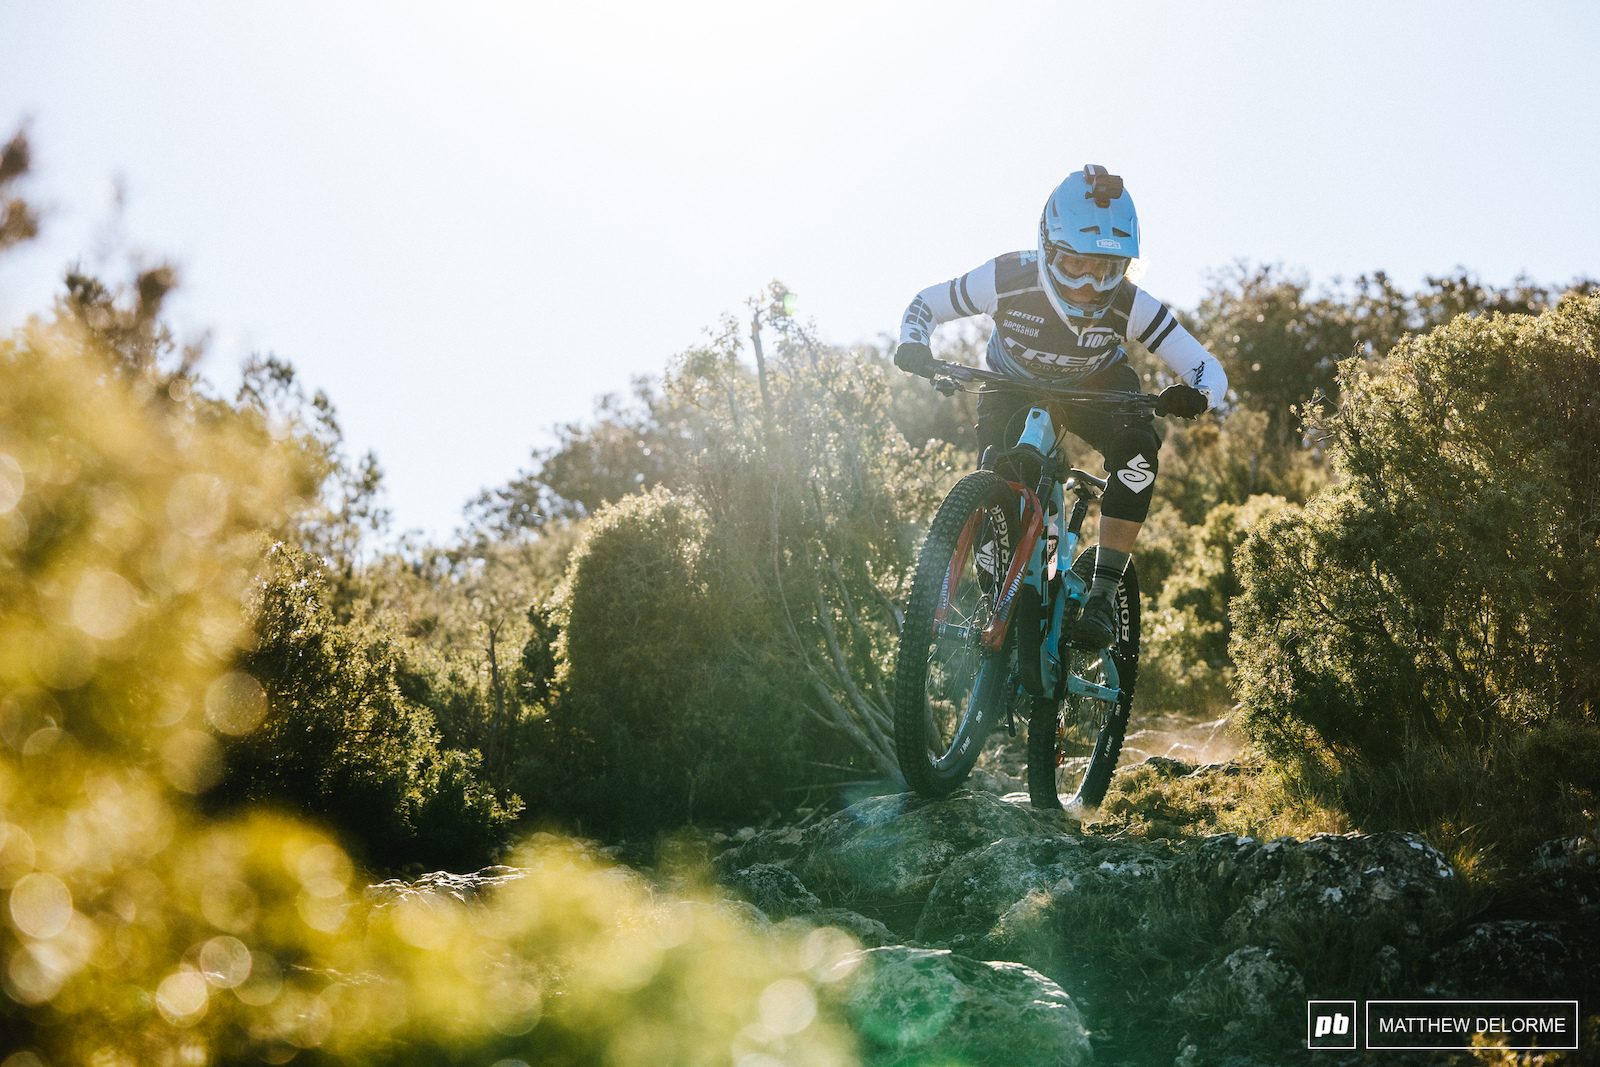 Katy Winton has the ride dialed and is ready for a new EWS season to get started.